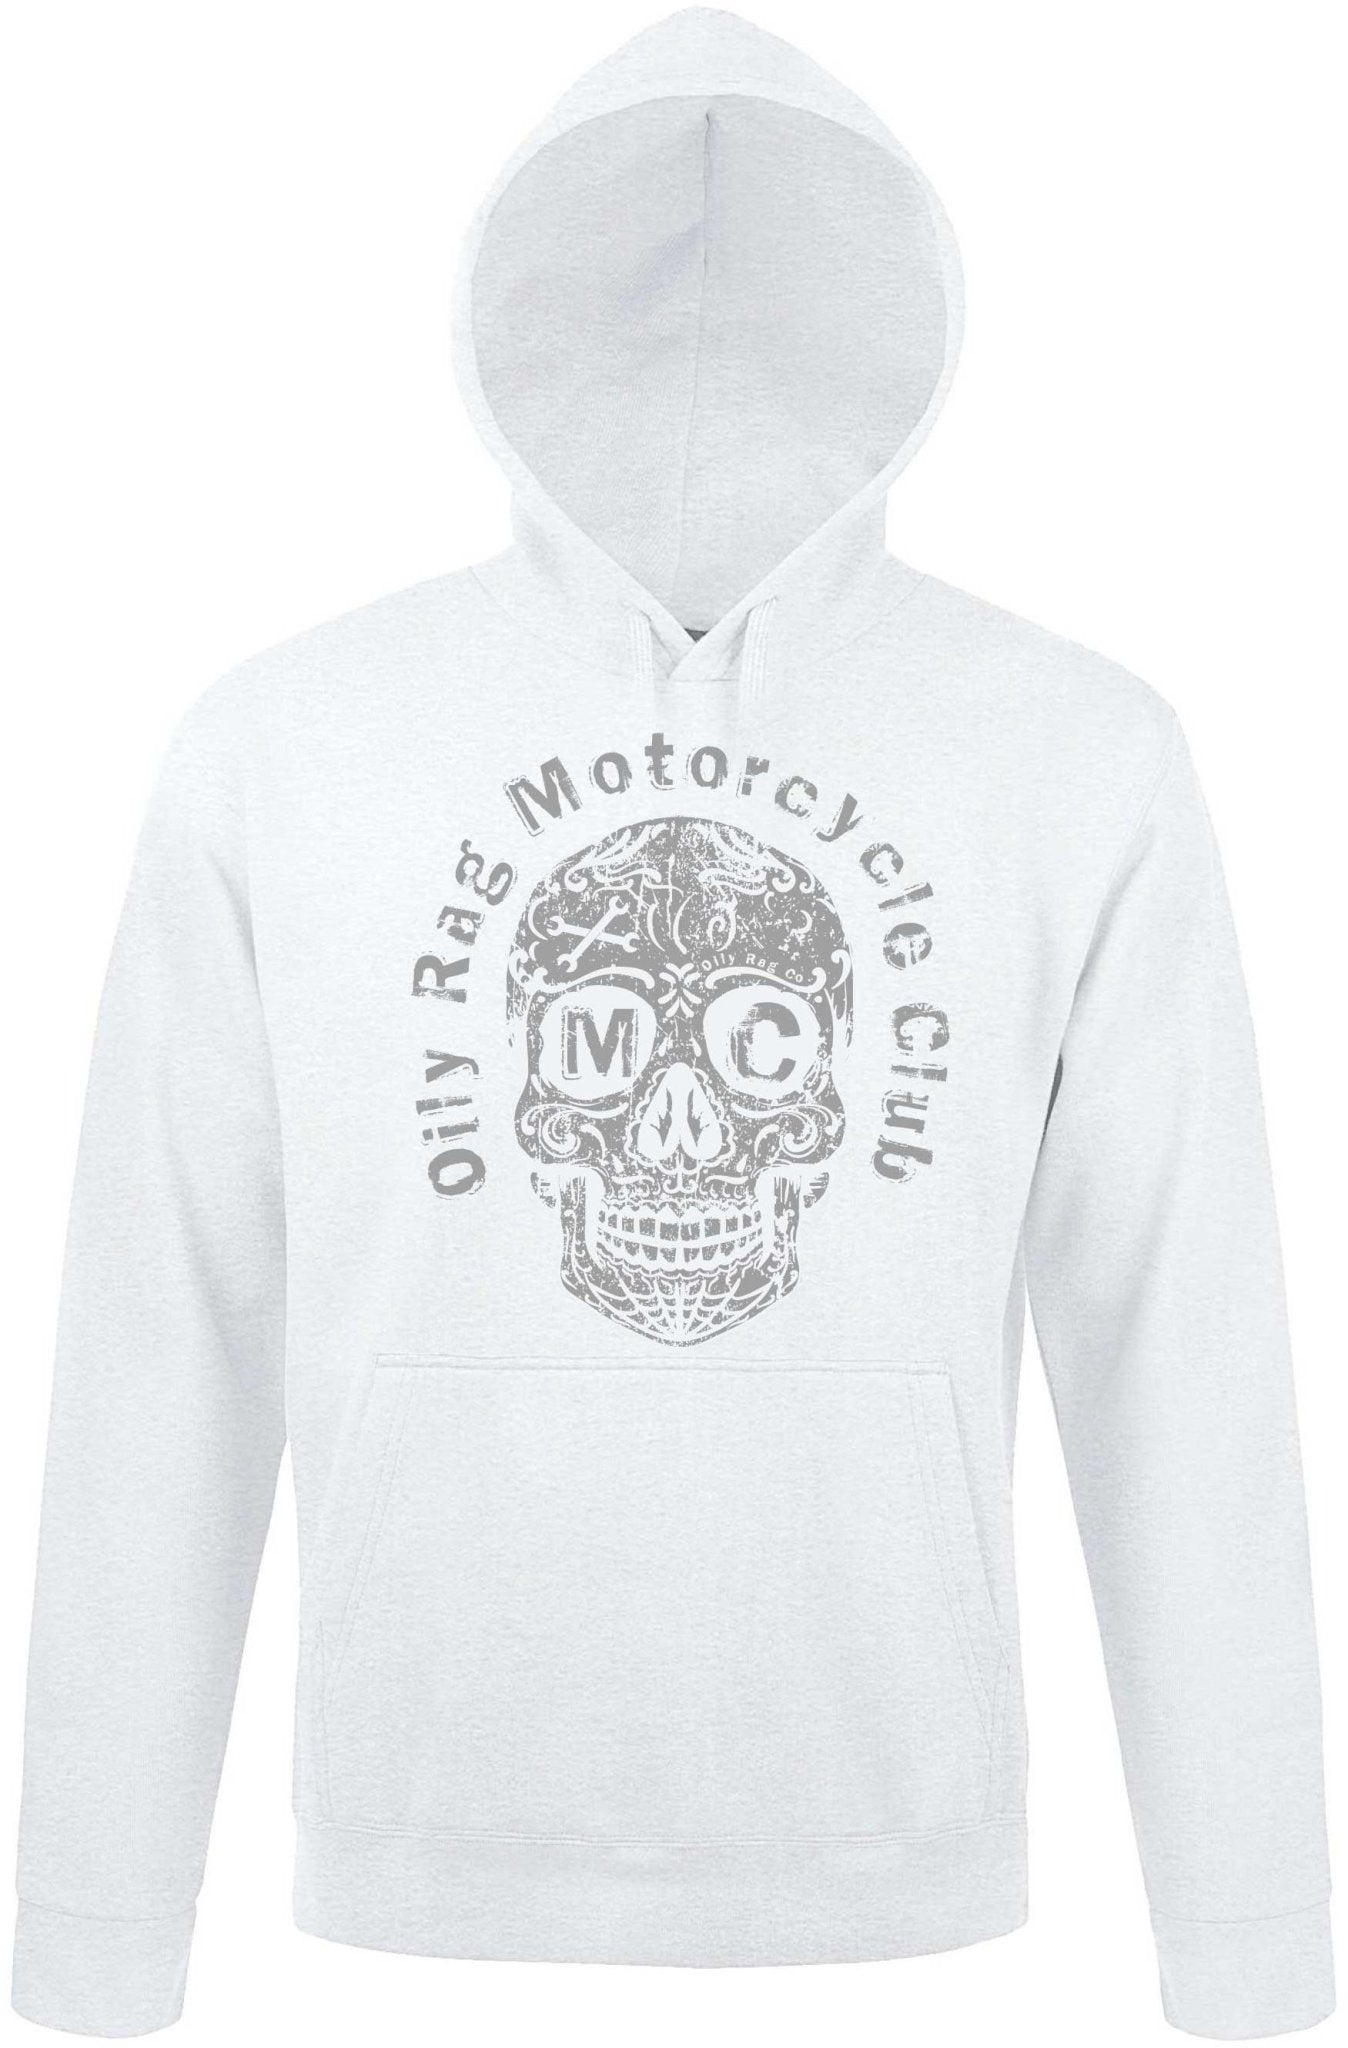 Oily Rag Clothing - Oily Rag Clothing Unisex Motors Inc Hoodie - Hoodies | Sweatshirts | Wind Stopper - Salt Flats Clothing